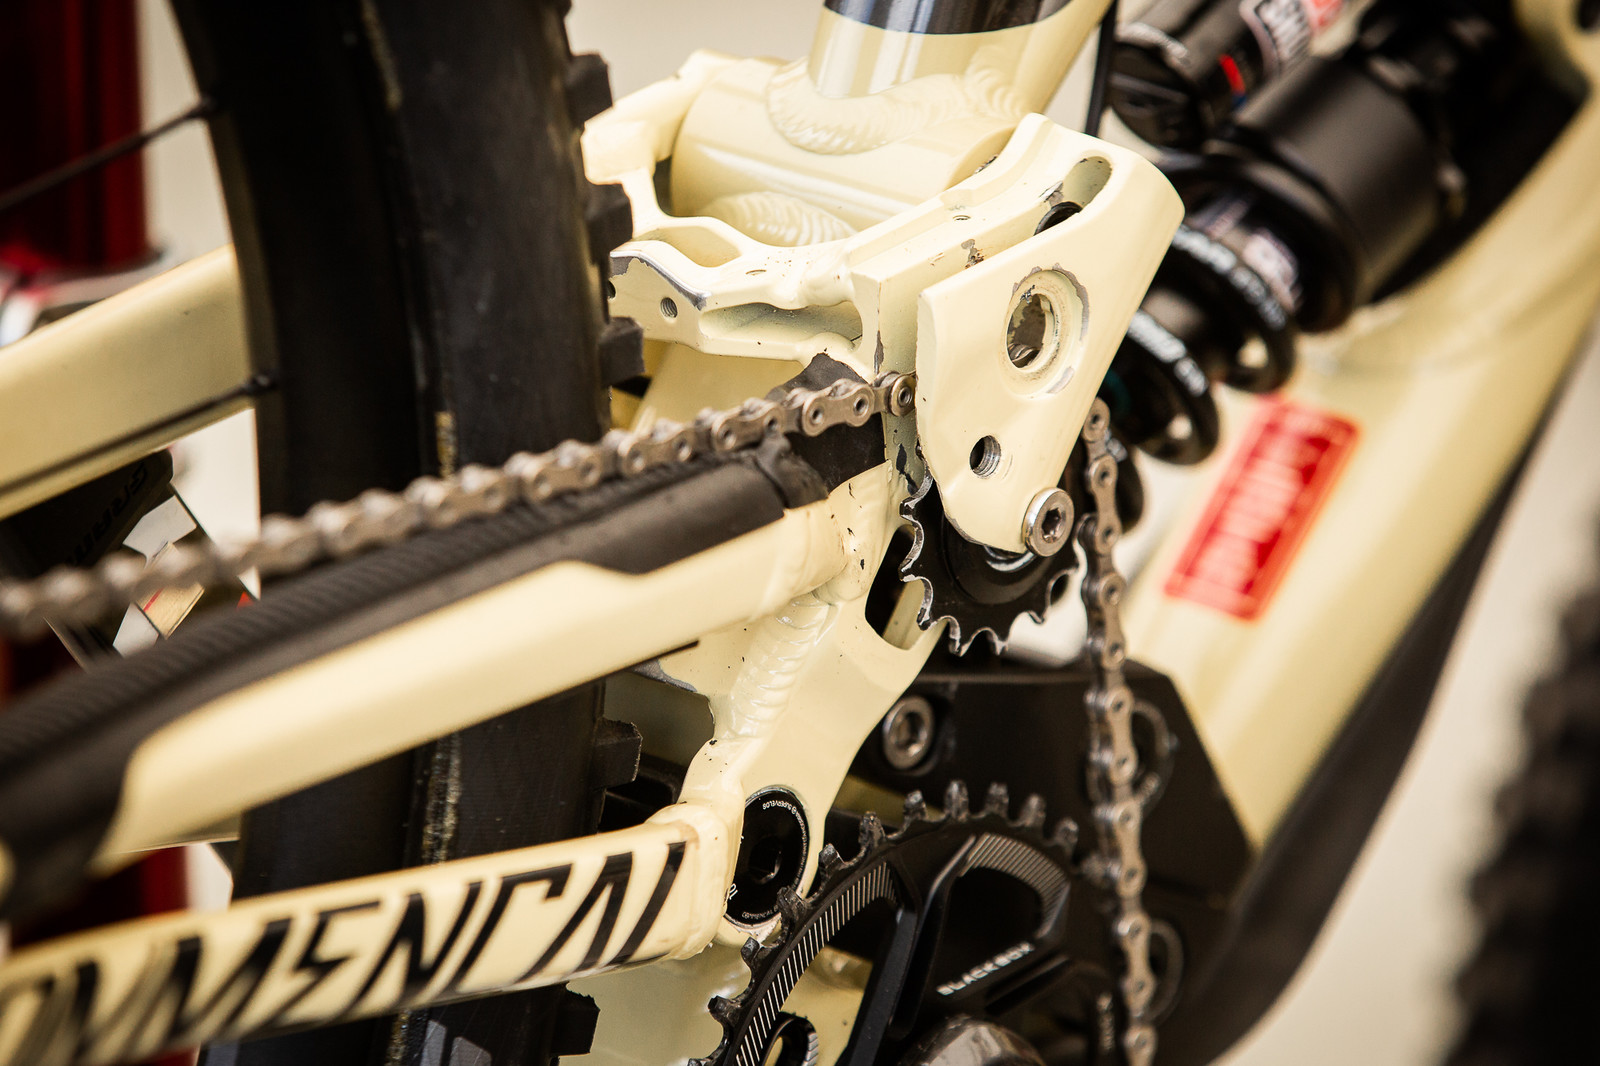 Amaury's Pulley Placement - PIT BITS - Andorra World Cup Downhill - Mountain Biking Pictures - Vital MTB